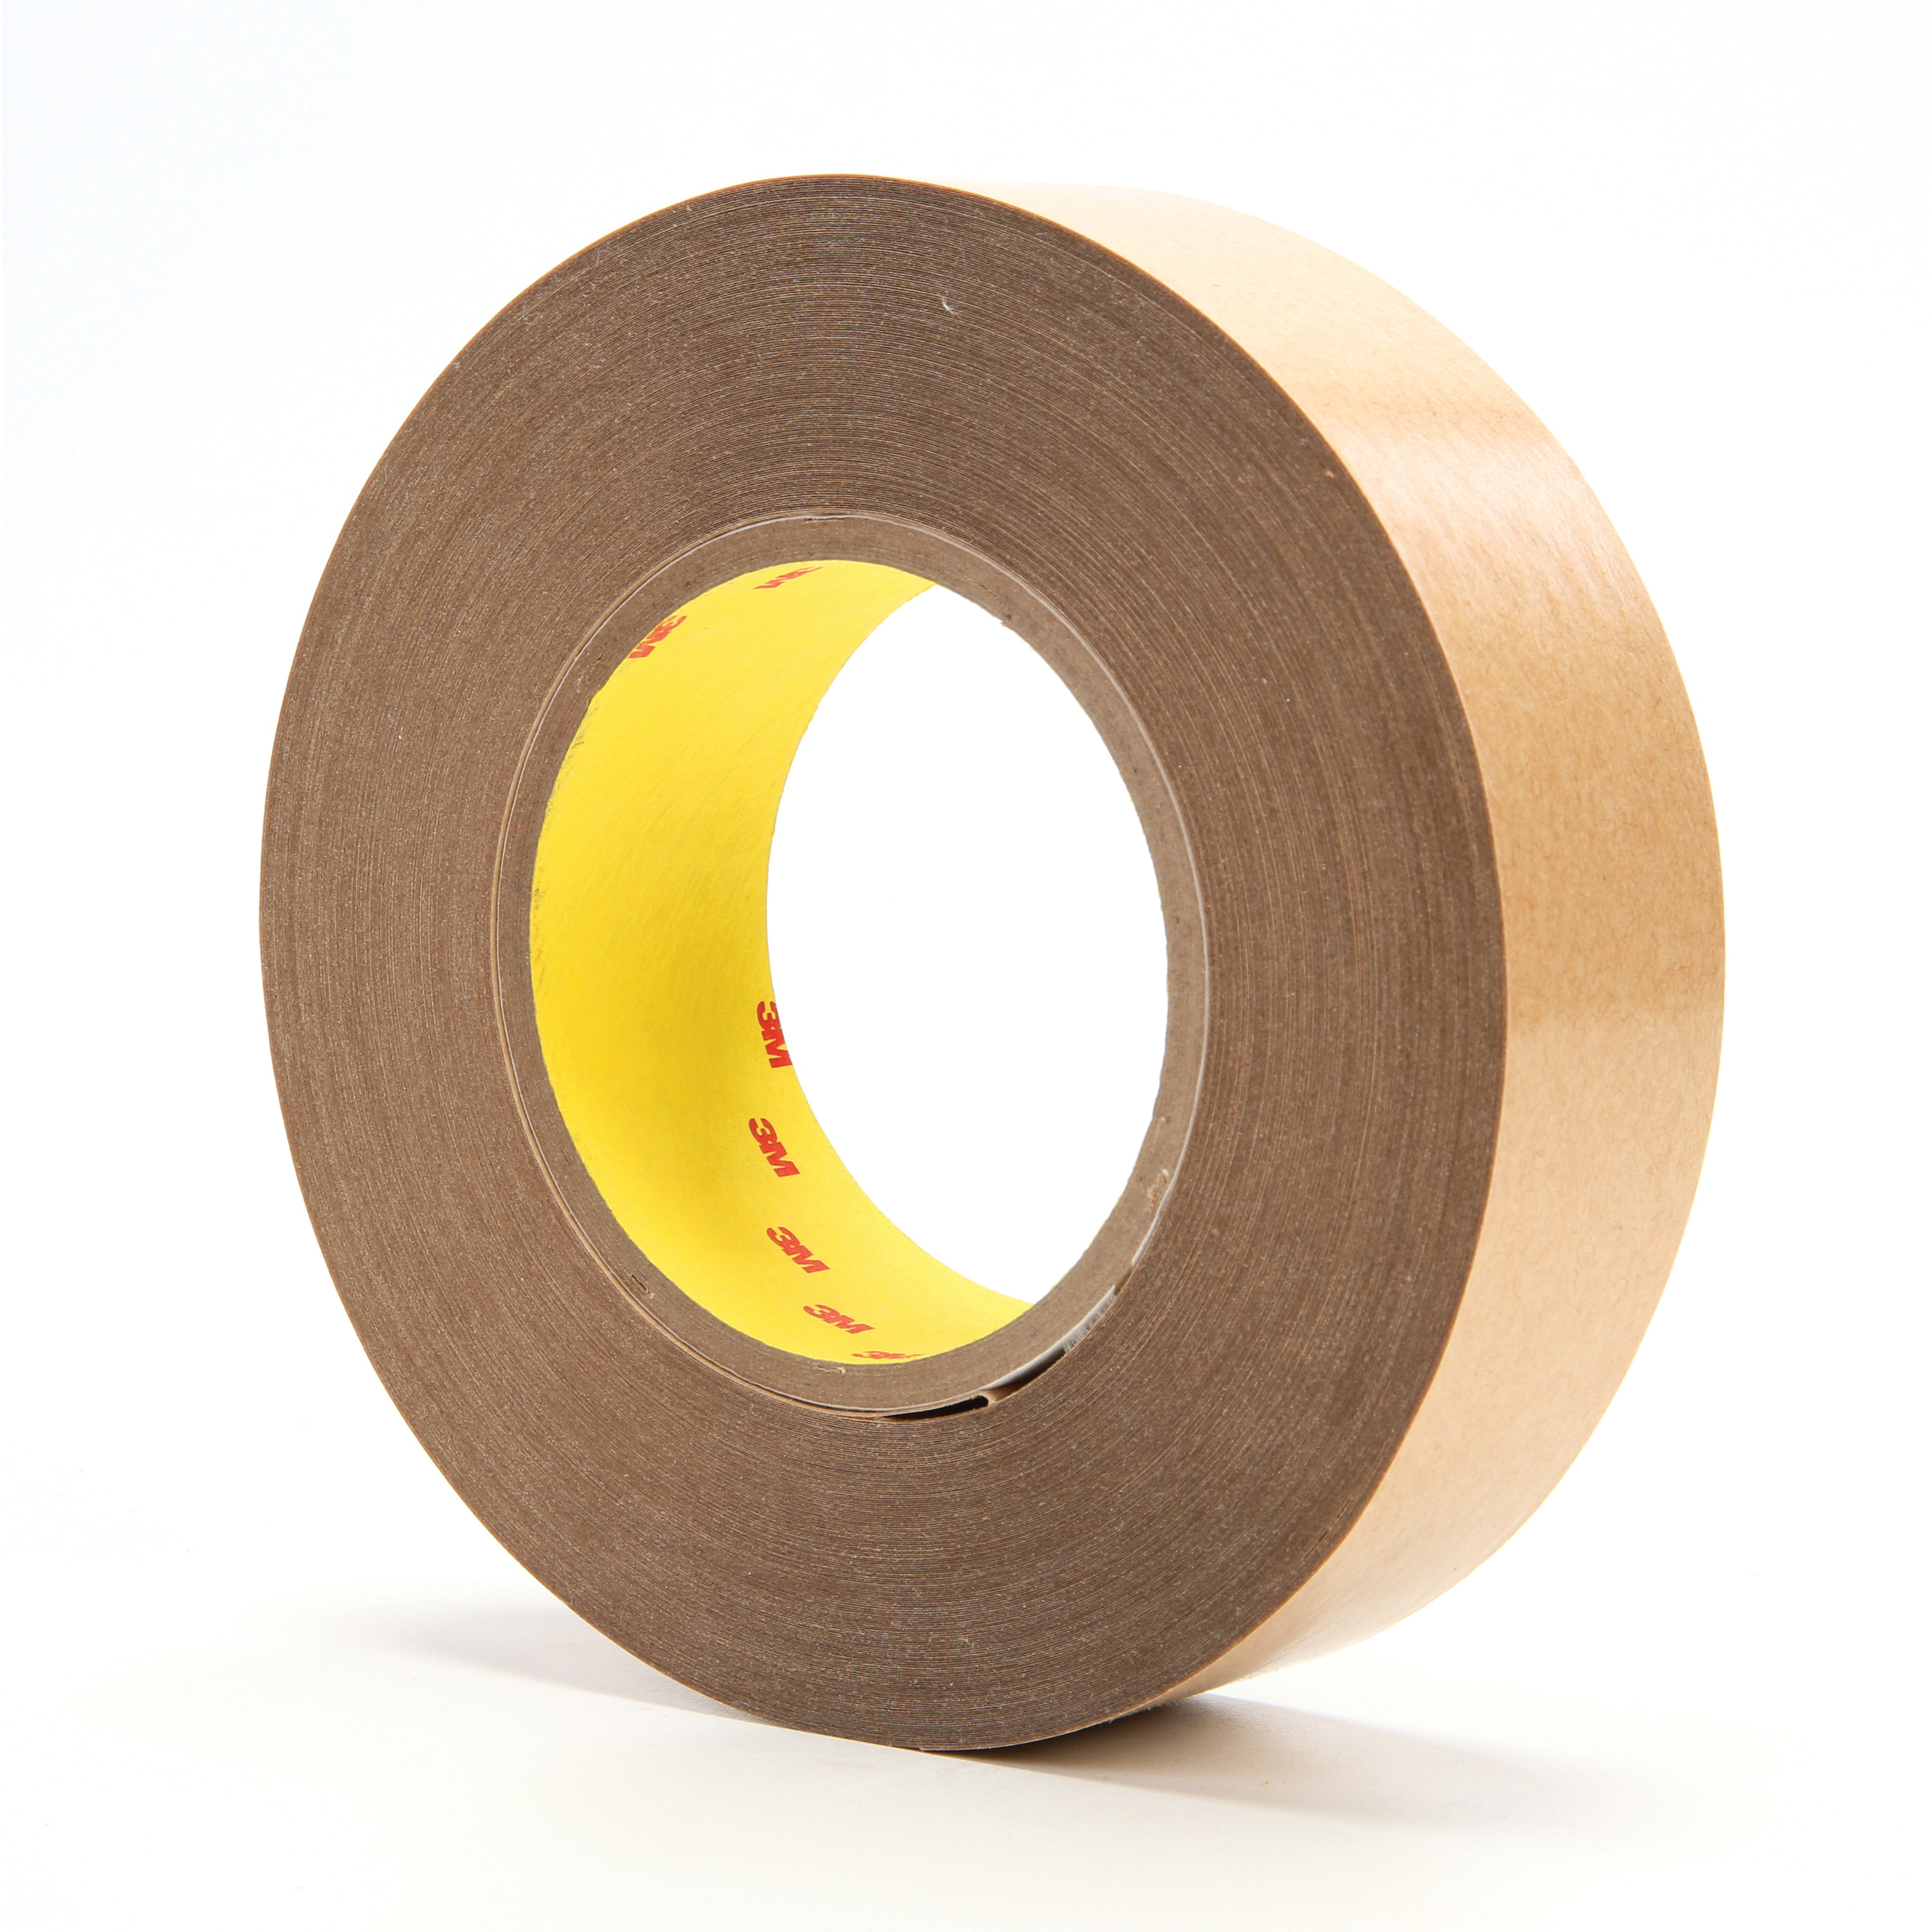 3M™ 021200-84225 General Purpose High Tack Adhesive Transfer Tape, 60 yd L x 1-1/2 in W, 8.5 mil THK, 5 mil 300 Acrylic Adhesive, Clear